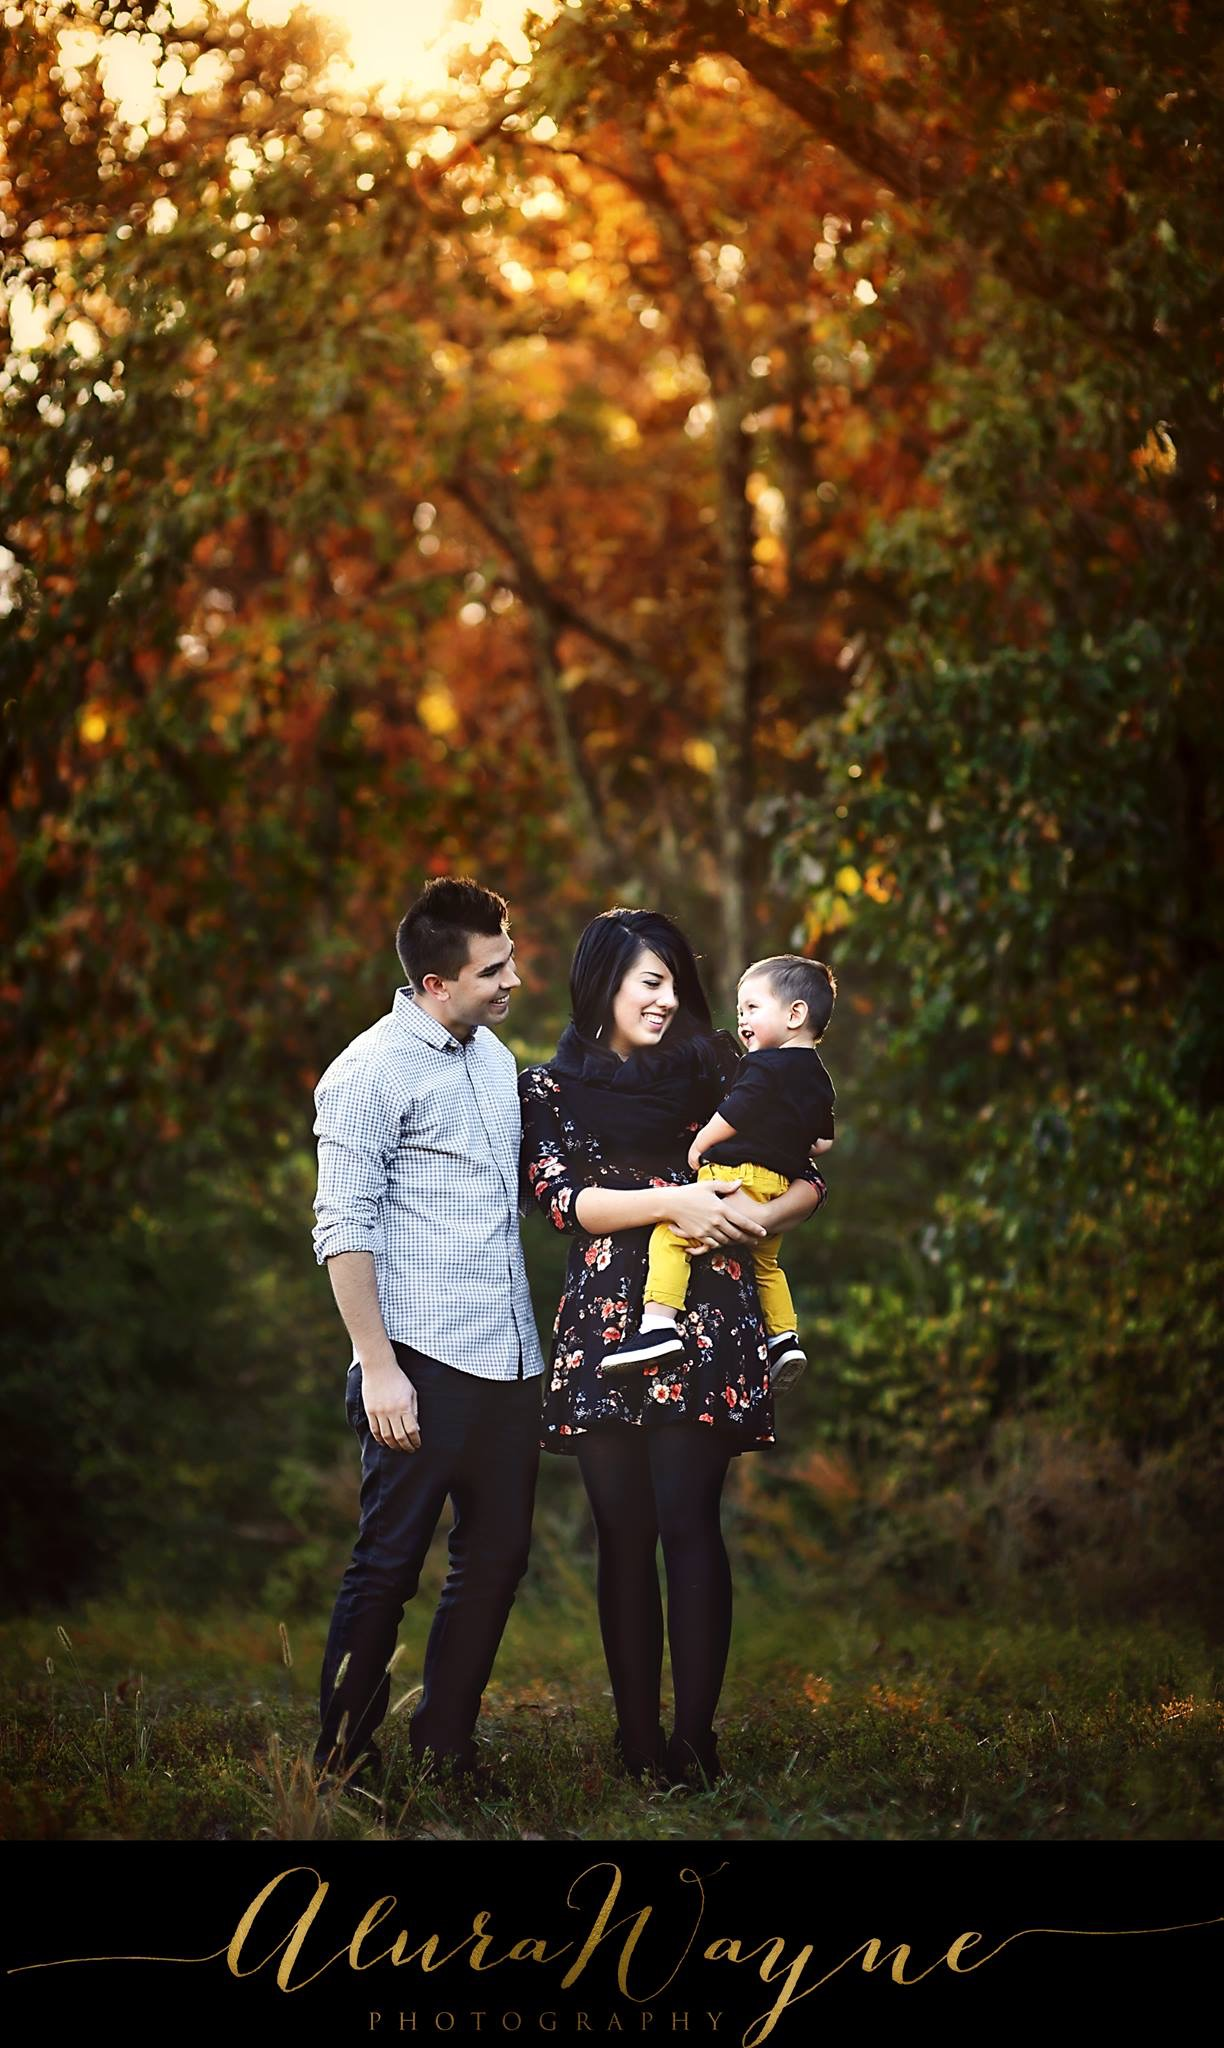 This family was precious- and dressed impeccably for fall!